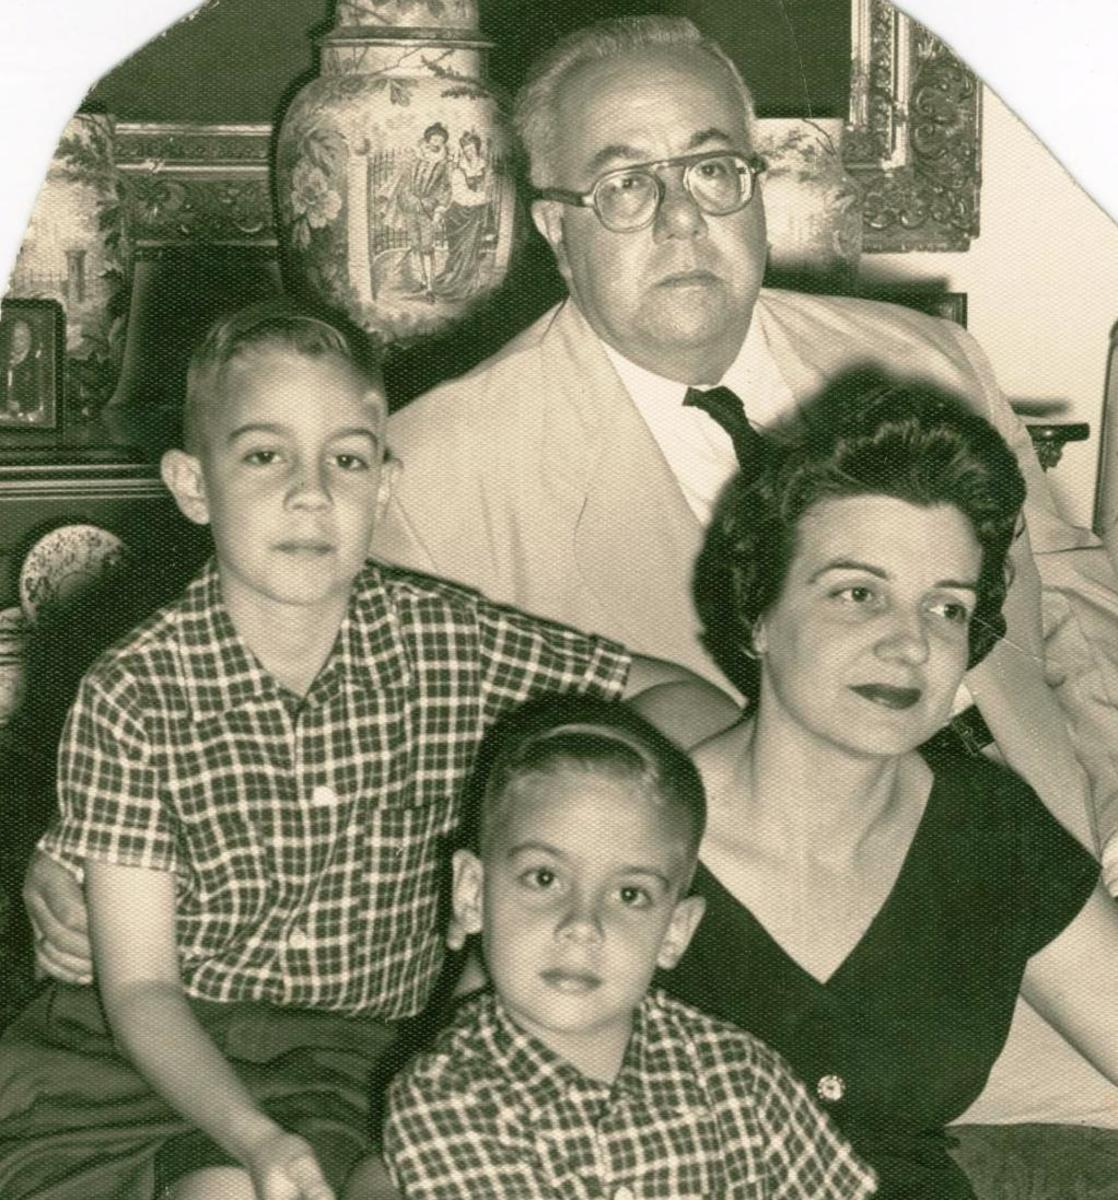 Carlos pictured with his family, circa 1959.